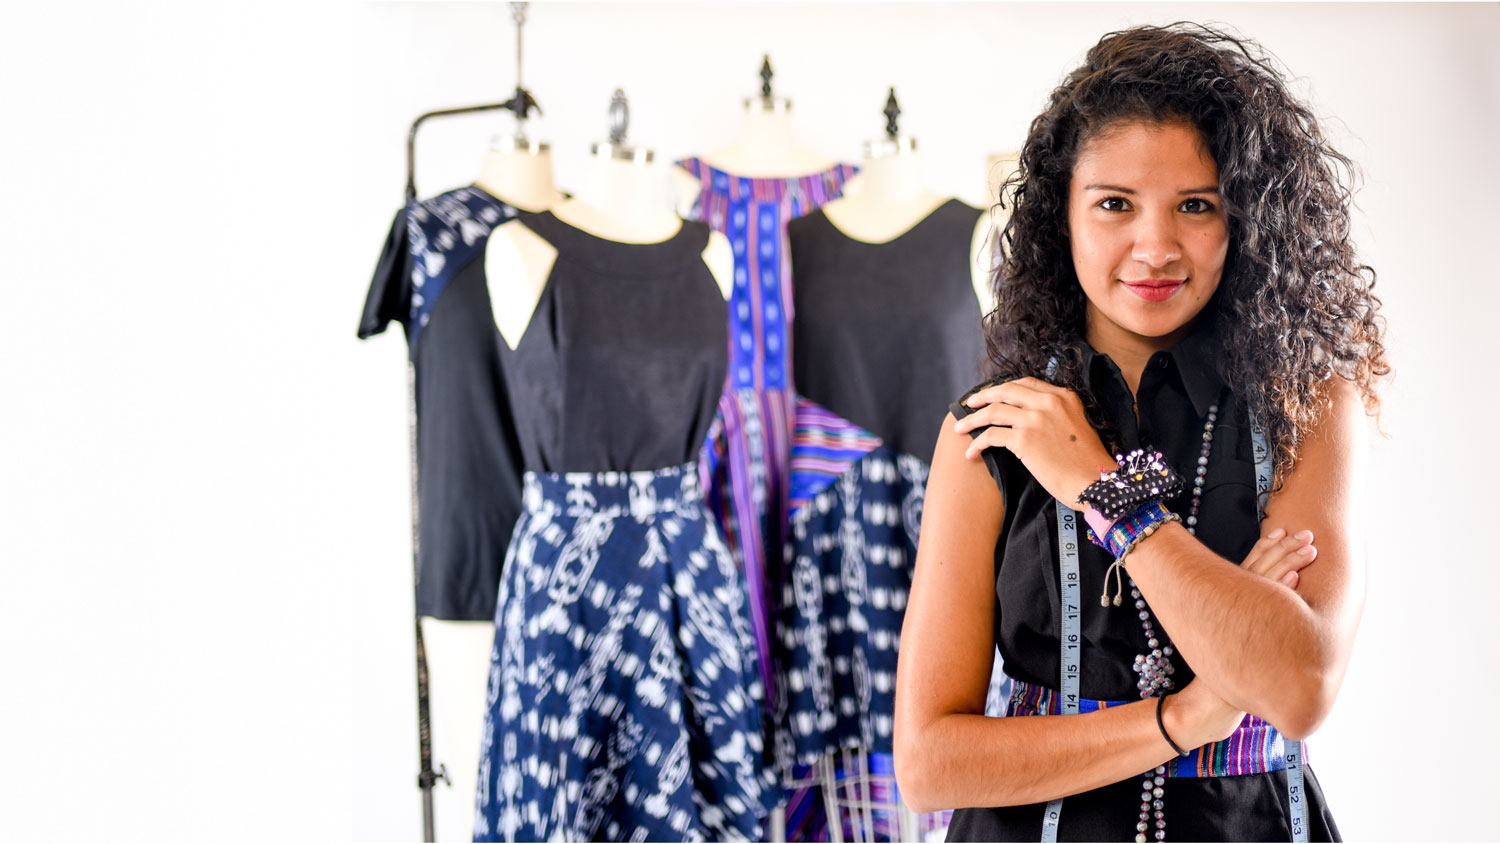 Lisbeth Carolina Arias with clothing she designed